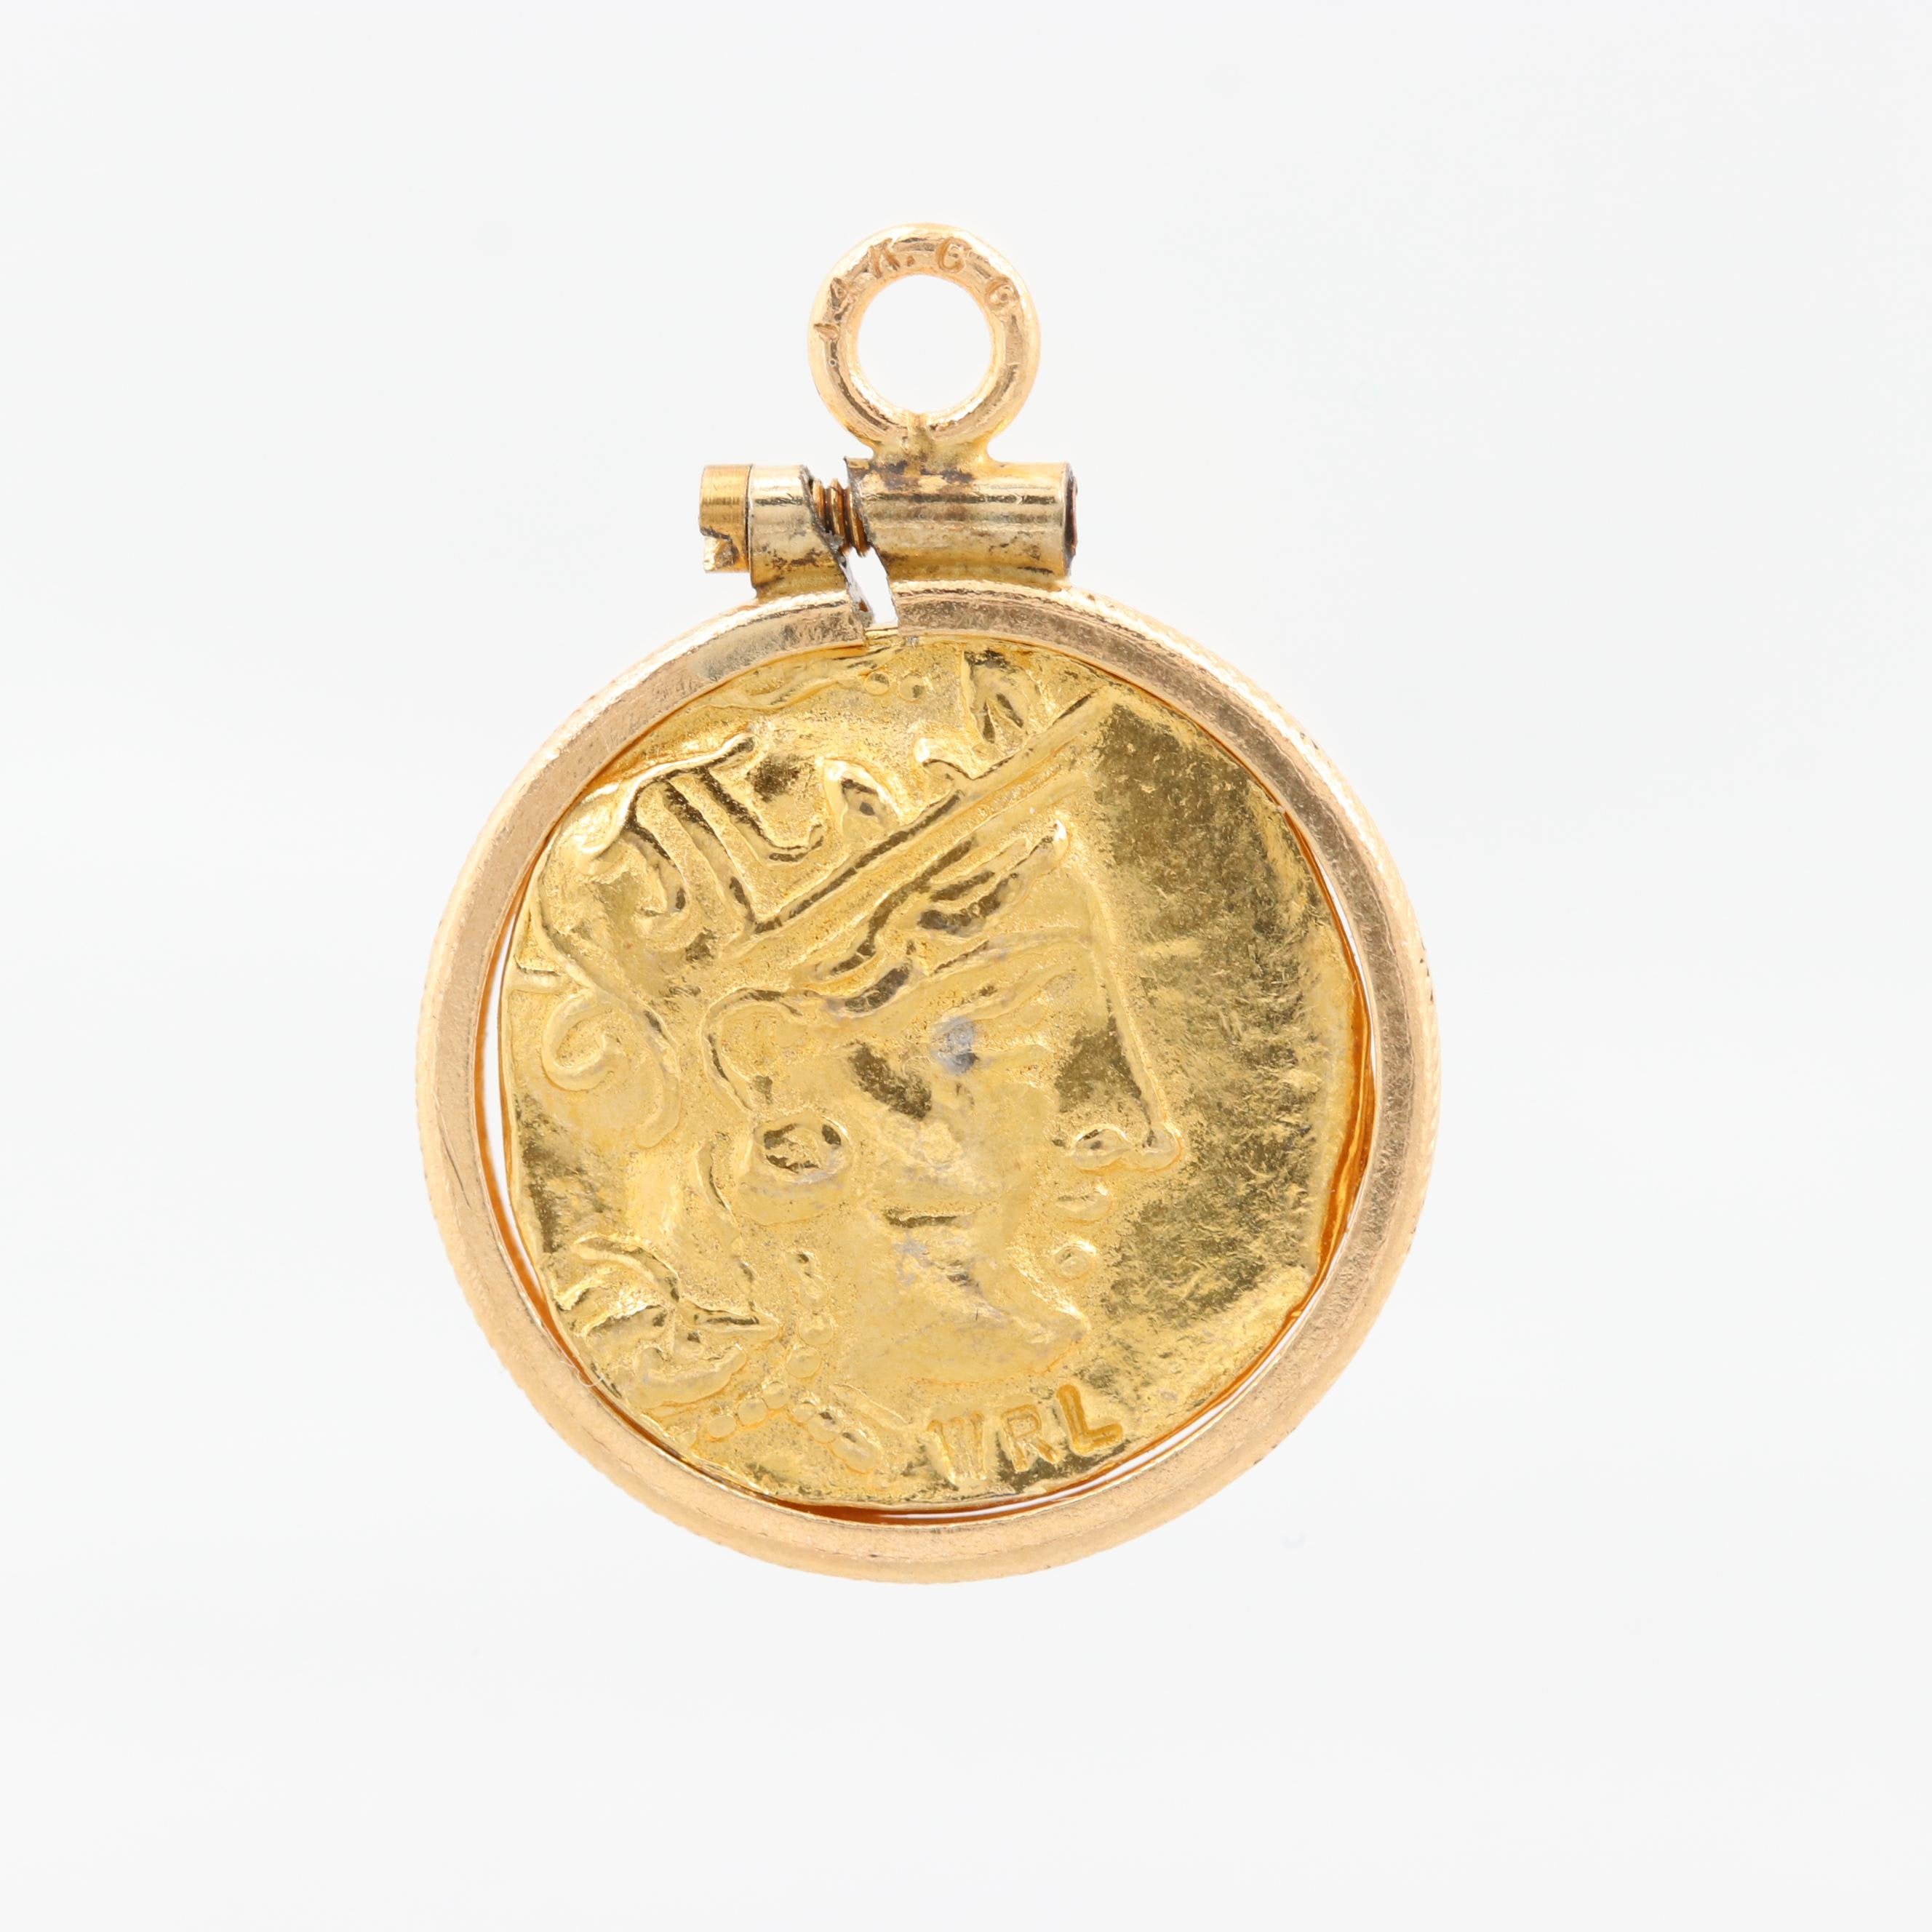 14K Yellow Gold Pendant with Reproduction Ancient Greek Athenian Drachma Coin